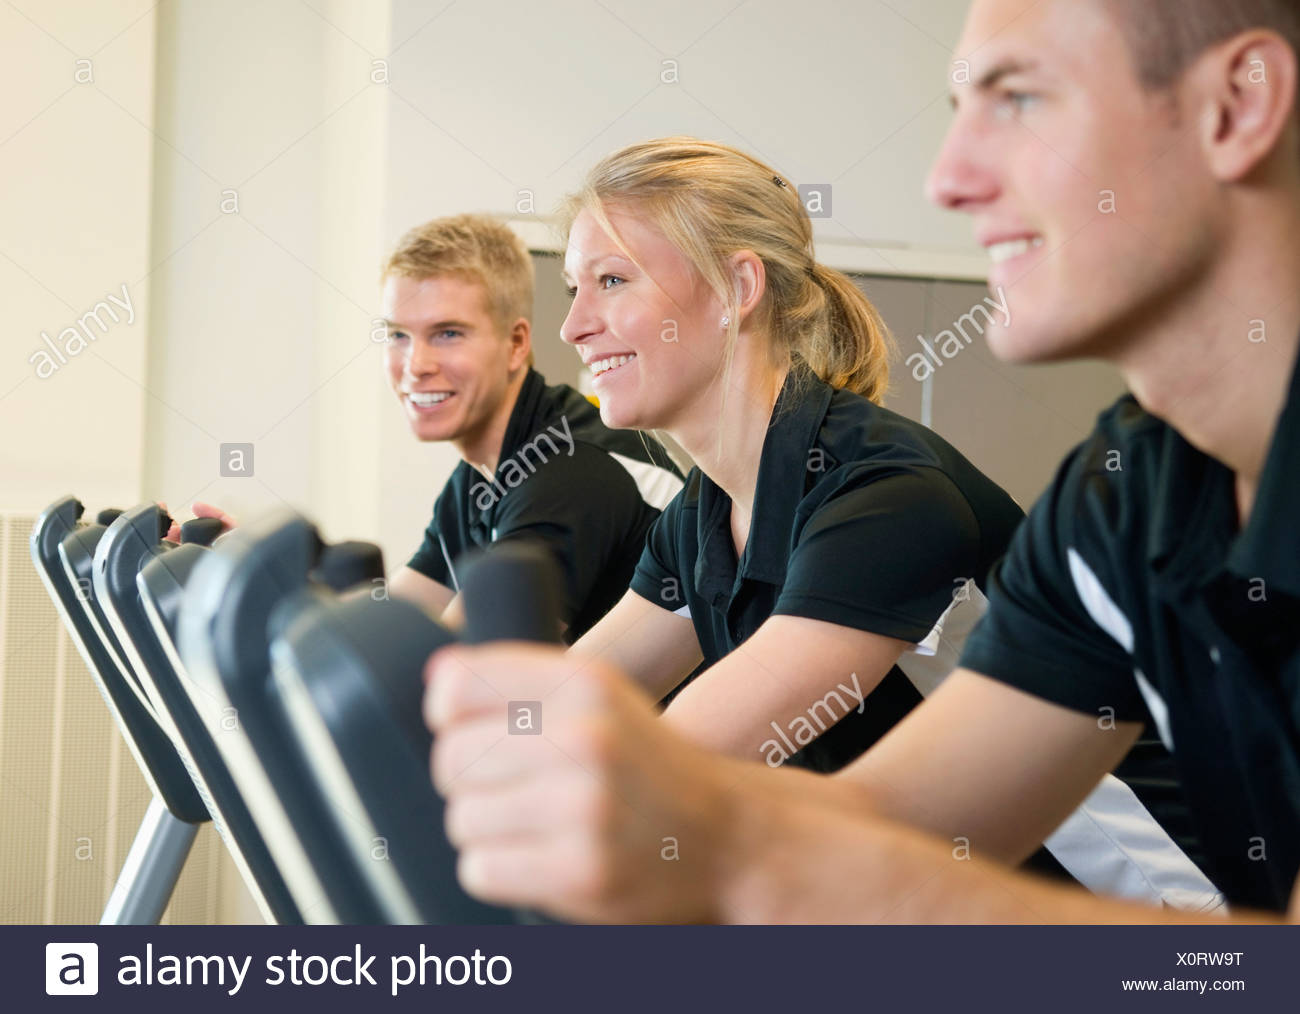 Three smiling people working out - Stock Image